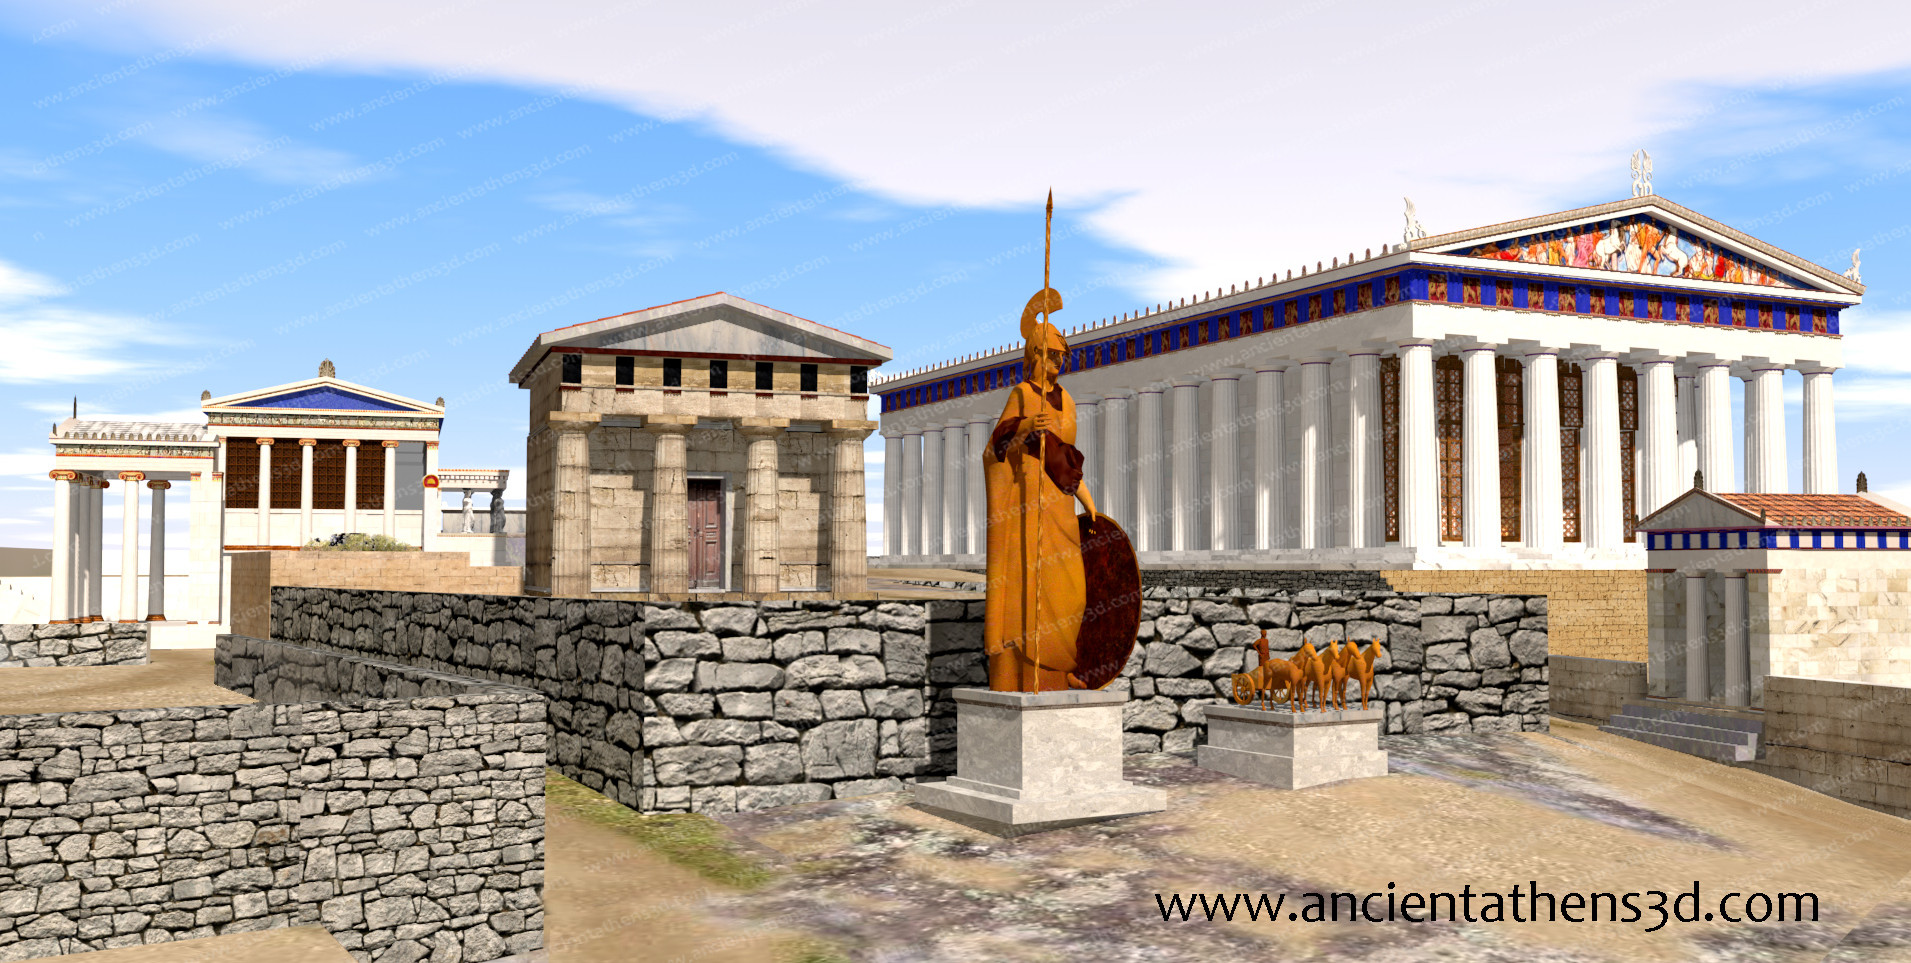 Home - Ancient Athens 3D Ancient Athenians